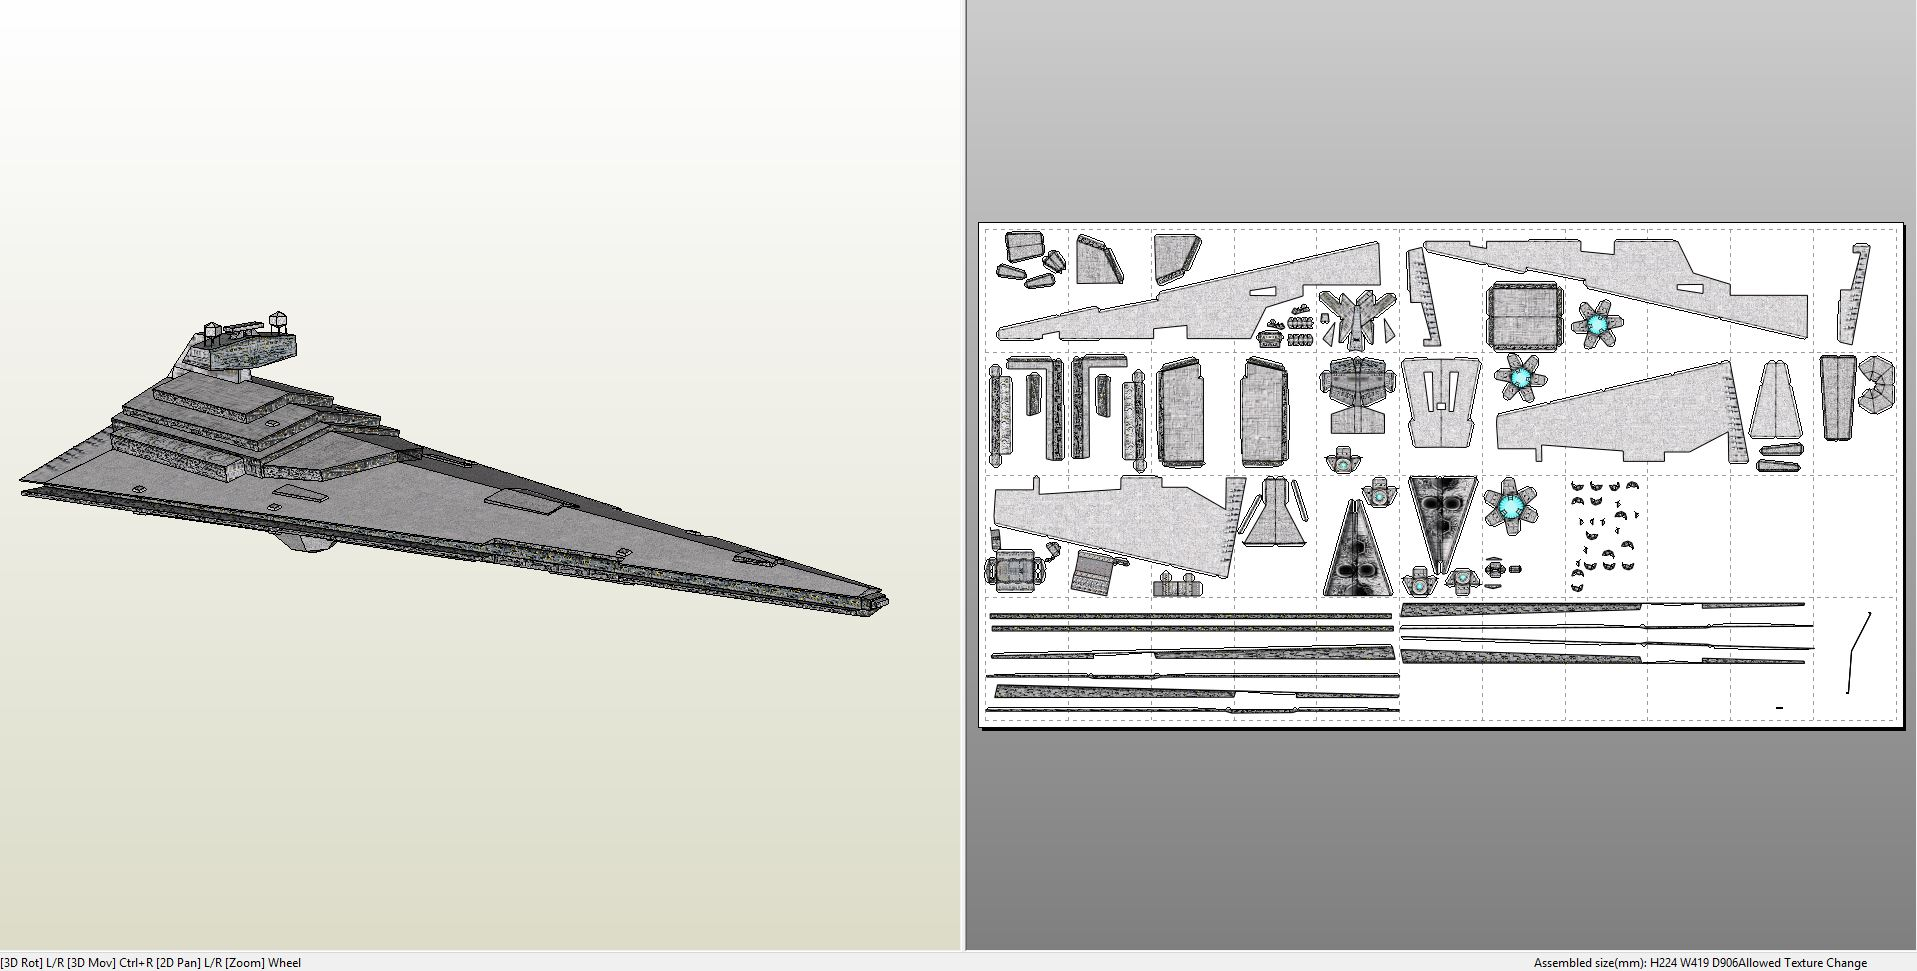 papercraft pdo file template for star wars imperial star destroyer. Black Bedroom Furniture Sets. Home Design Ideas